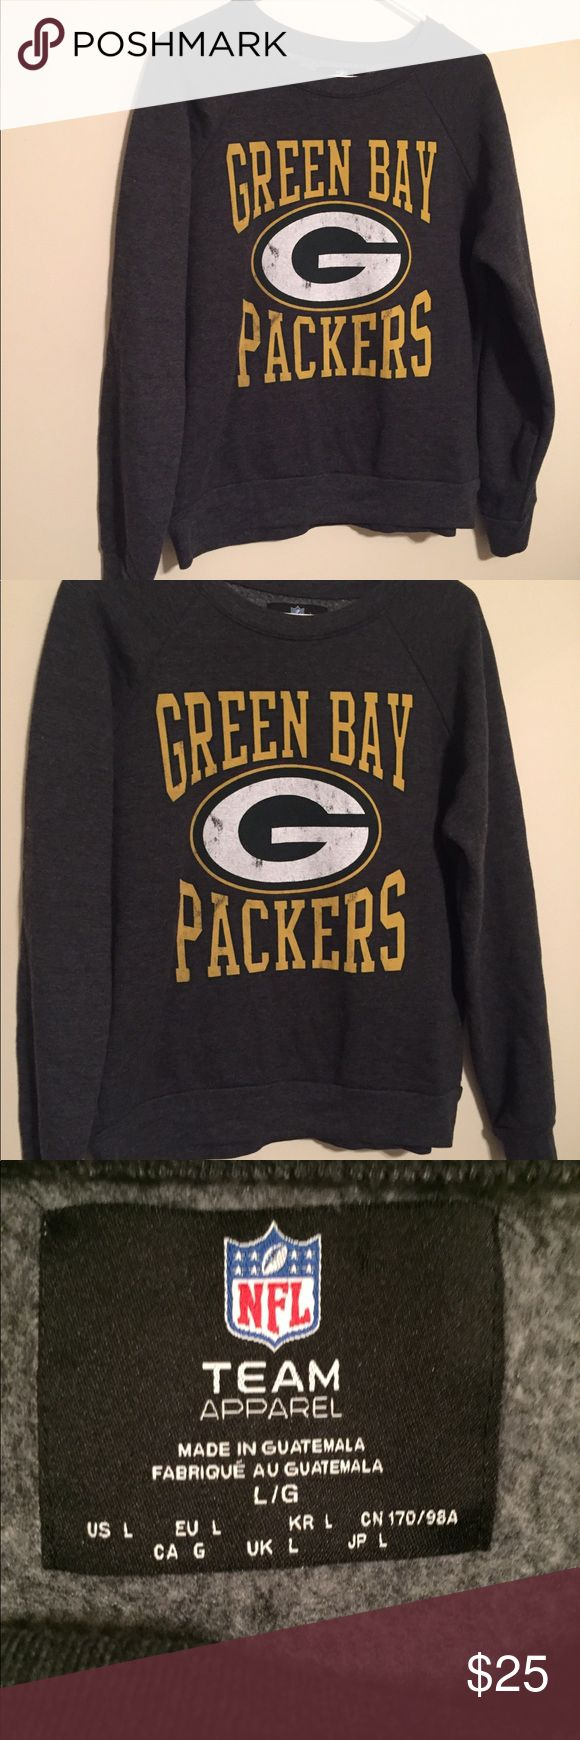 🆕 NFL Green Bay Packers Sweatshirt Extremely comfortable Green Bay Packers sweatshirt. Only worn for one season (dated a guy that was into them. He didn't realize I was not... whoops!). Perfect for a game or hanging out. Size Large but could easily work for a Medium NFL Team Apparel Sweaters